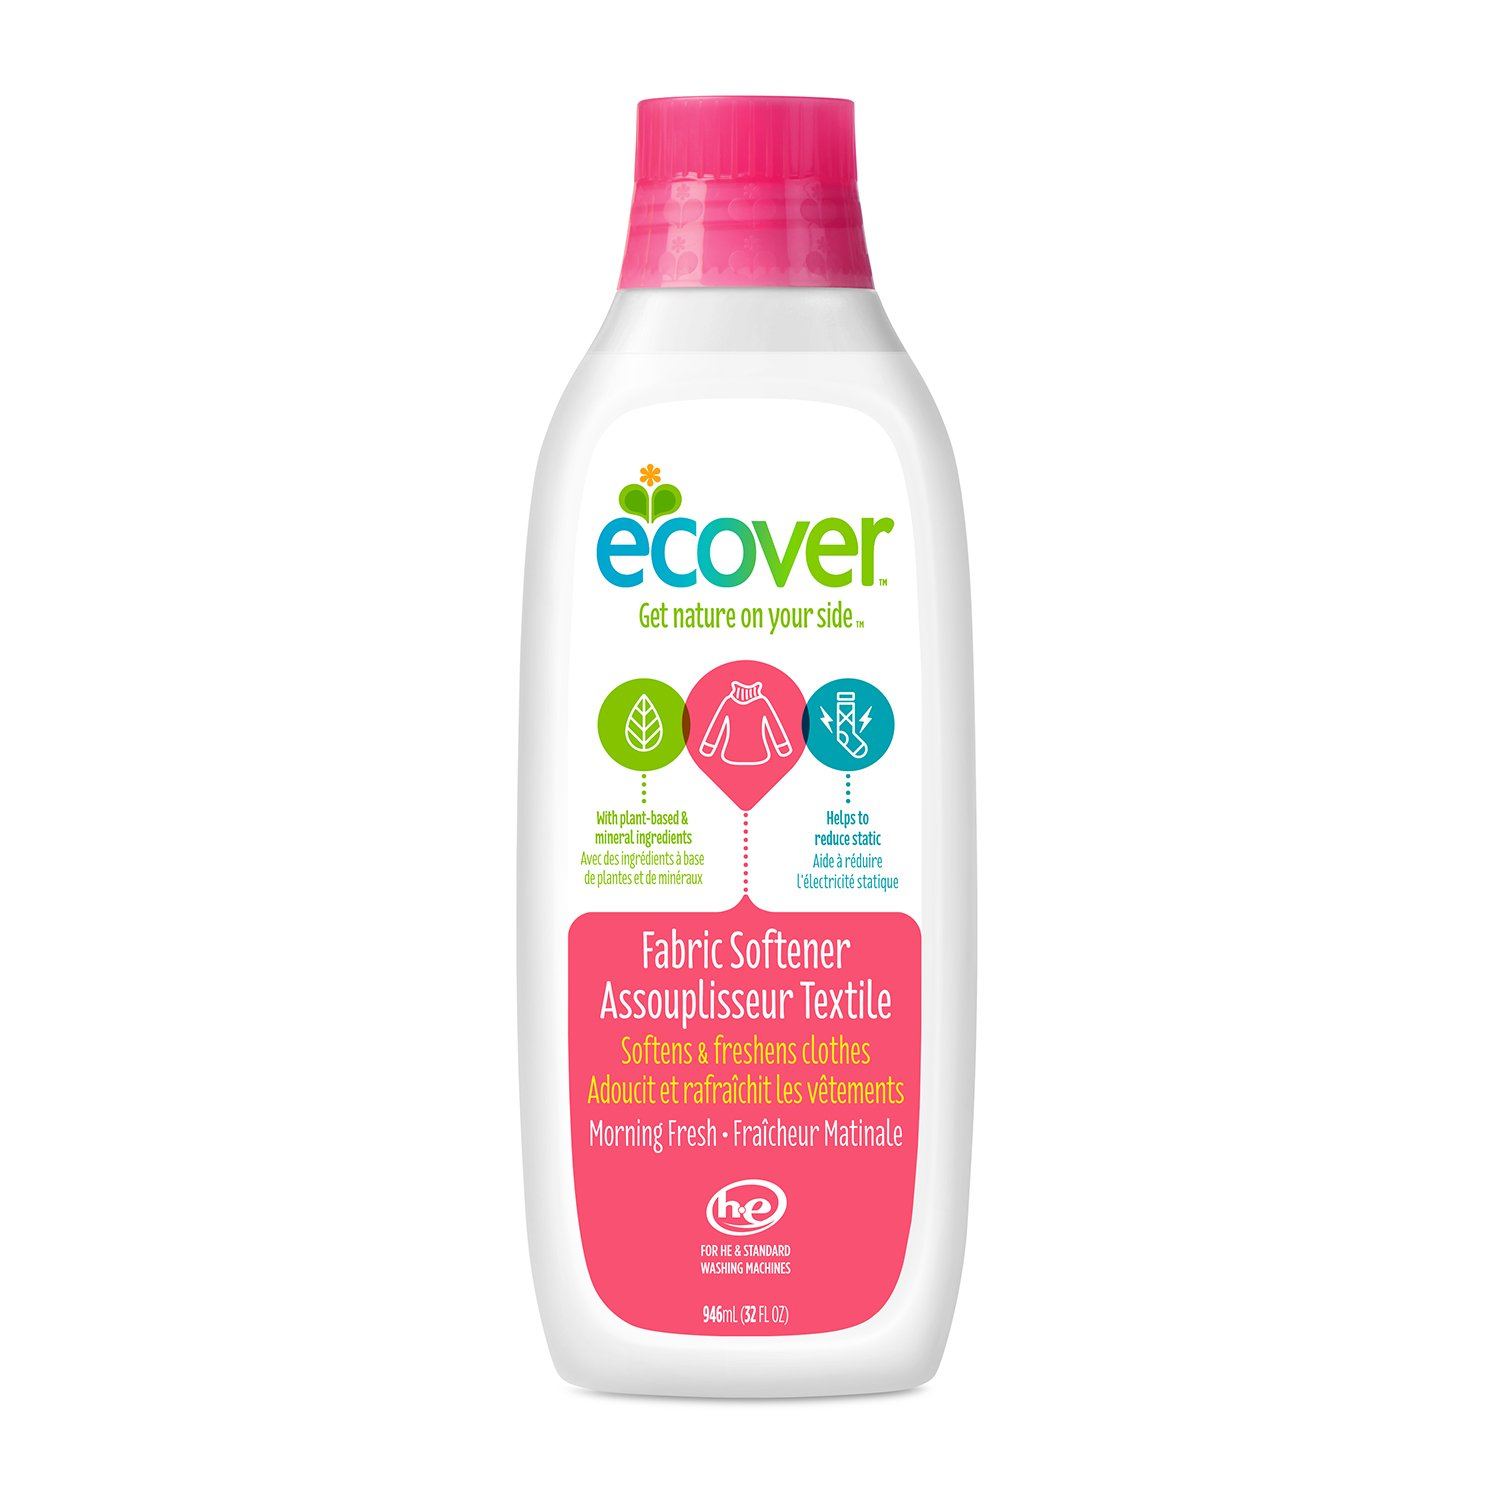 Ecover Fabric Softener, 32-Ounce Bottle (Pack of 6)